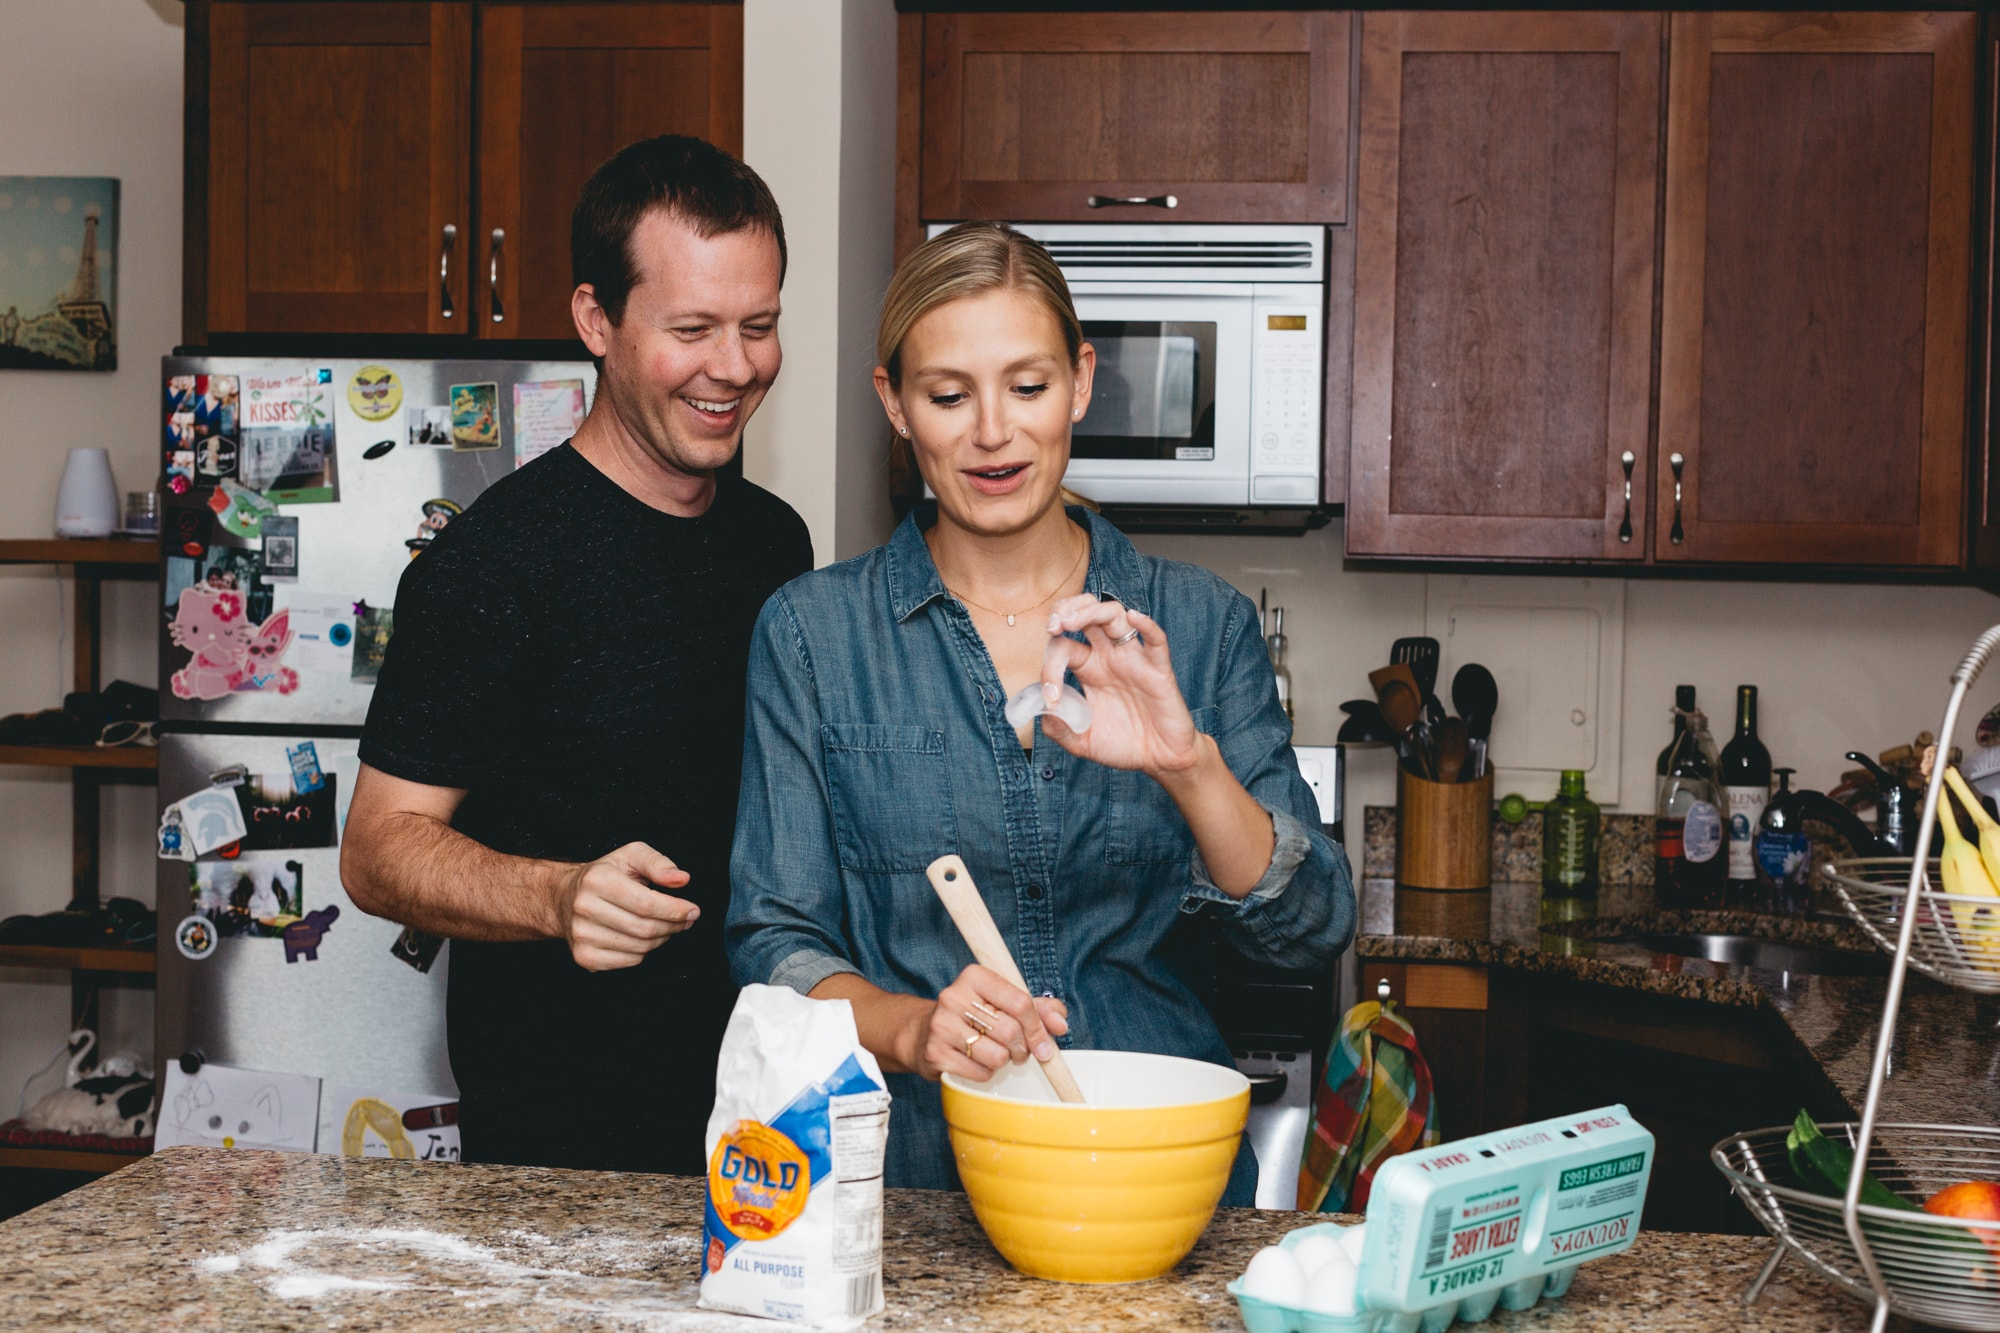 Jen and her Husband Baking